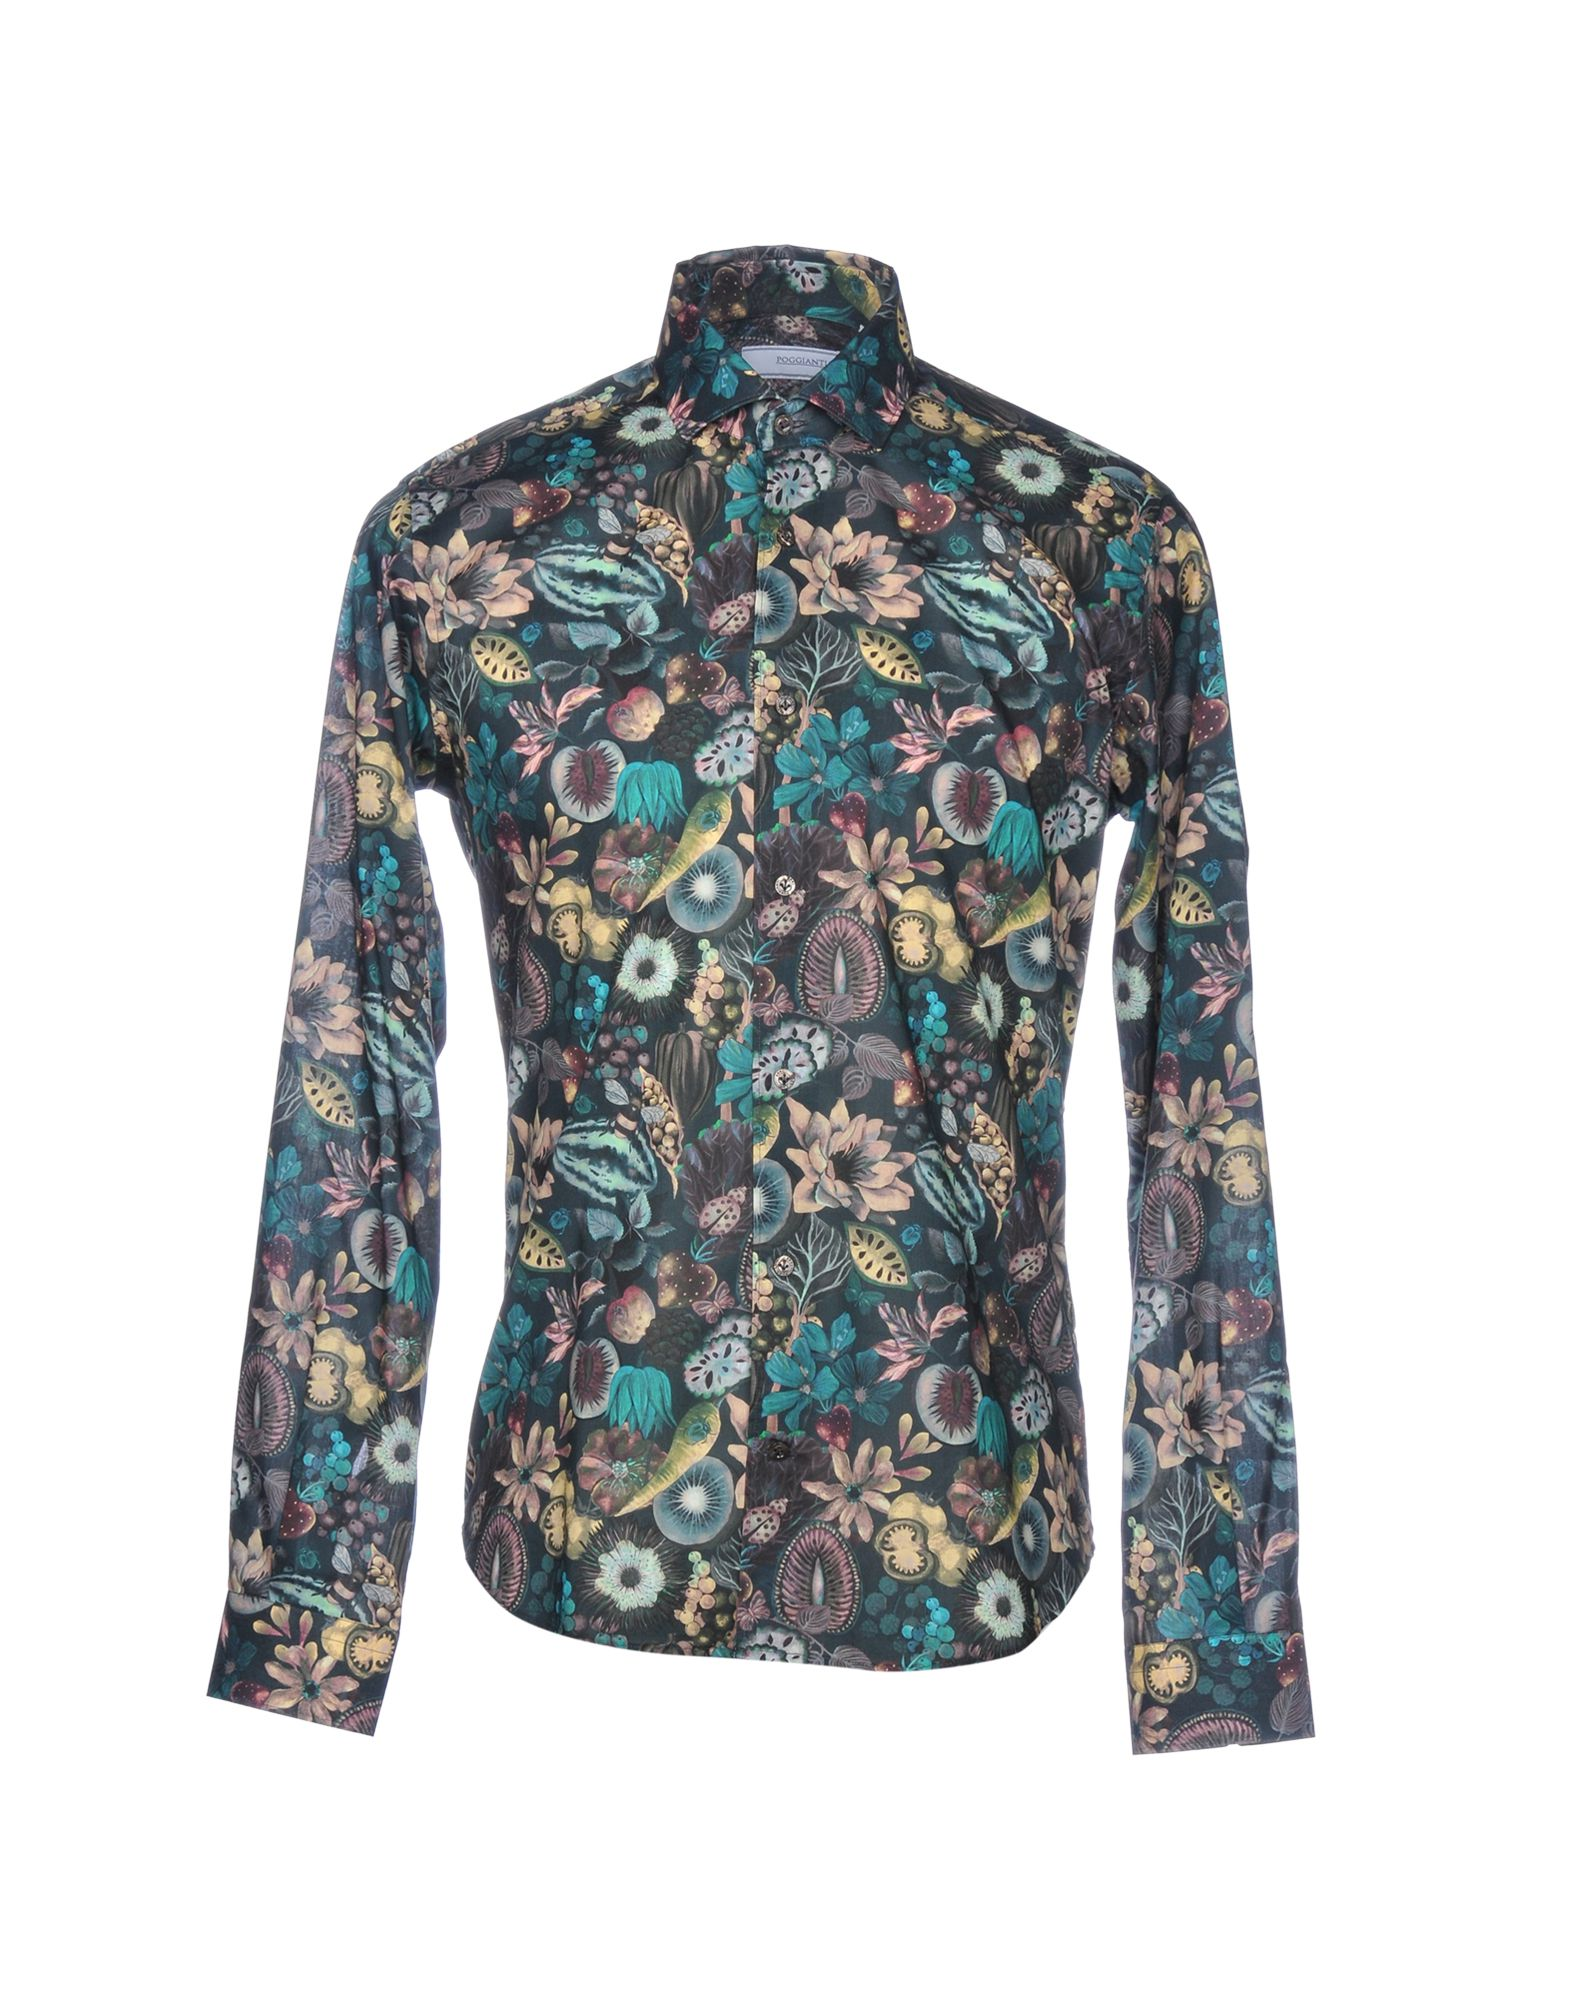 POGGIANTI Patterned Shirt in Green